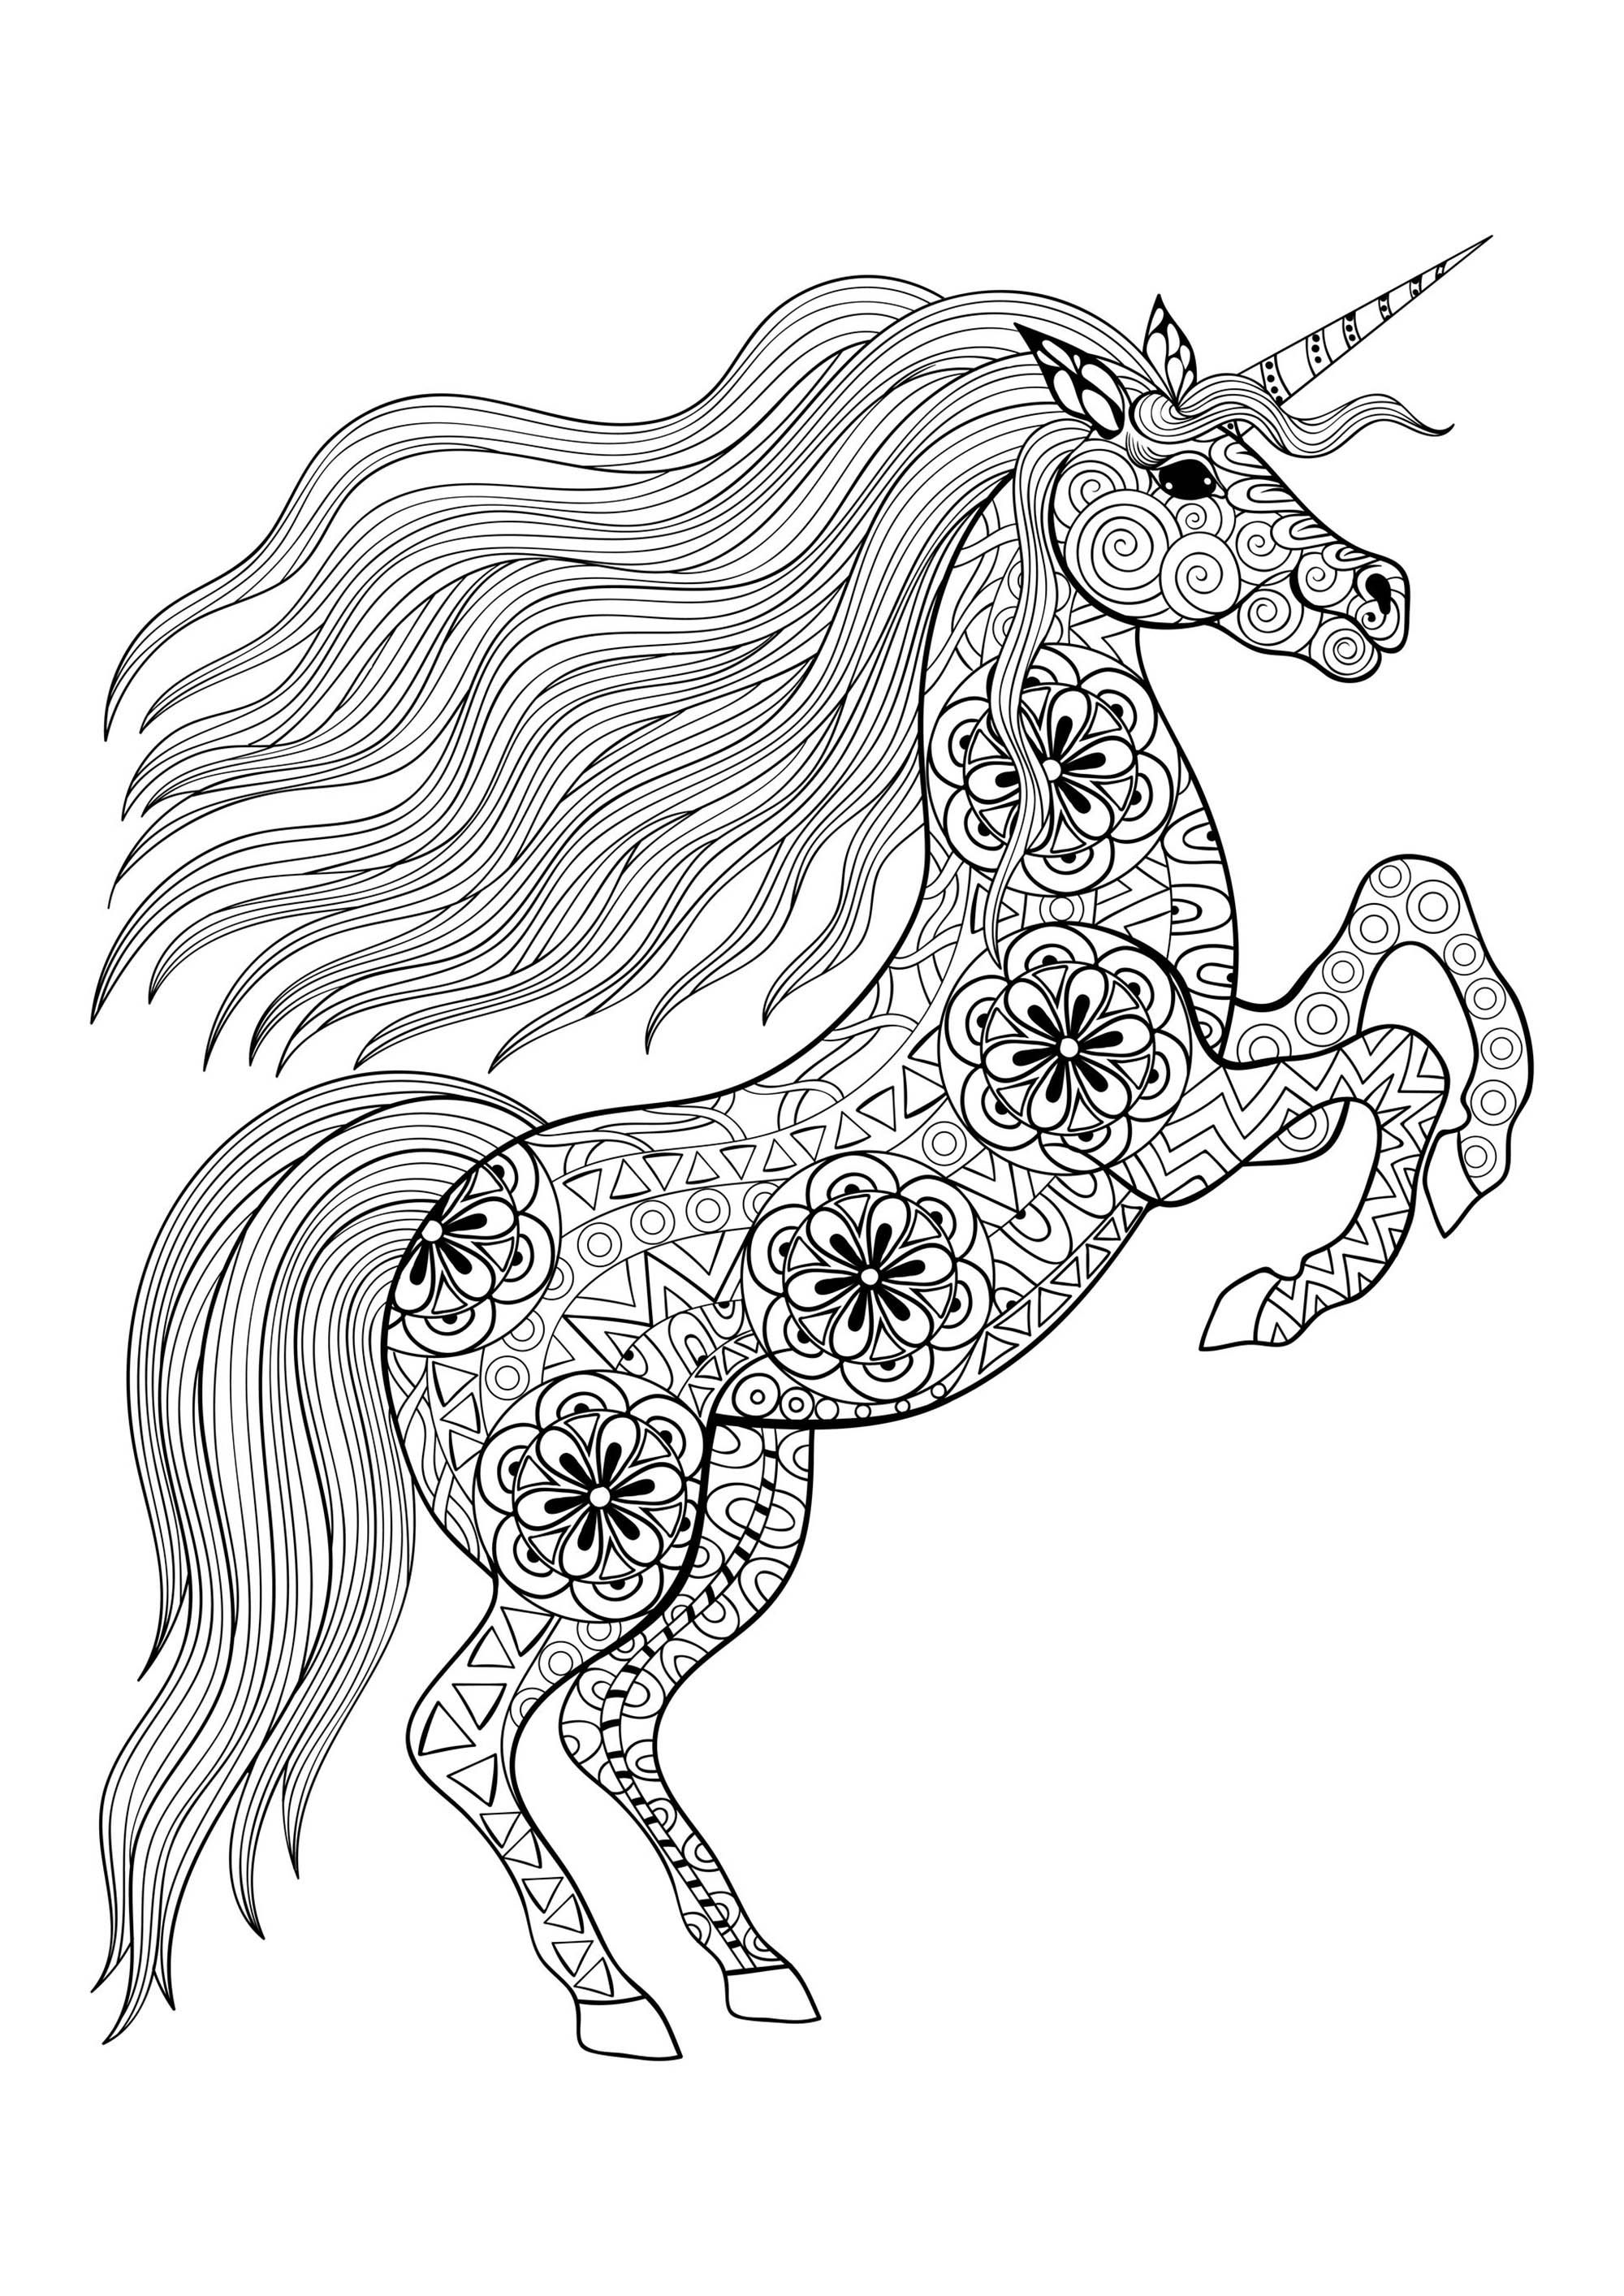 Unicorn On Its Two Back Legs Unicorns Coloring Pages For Adults